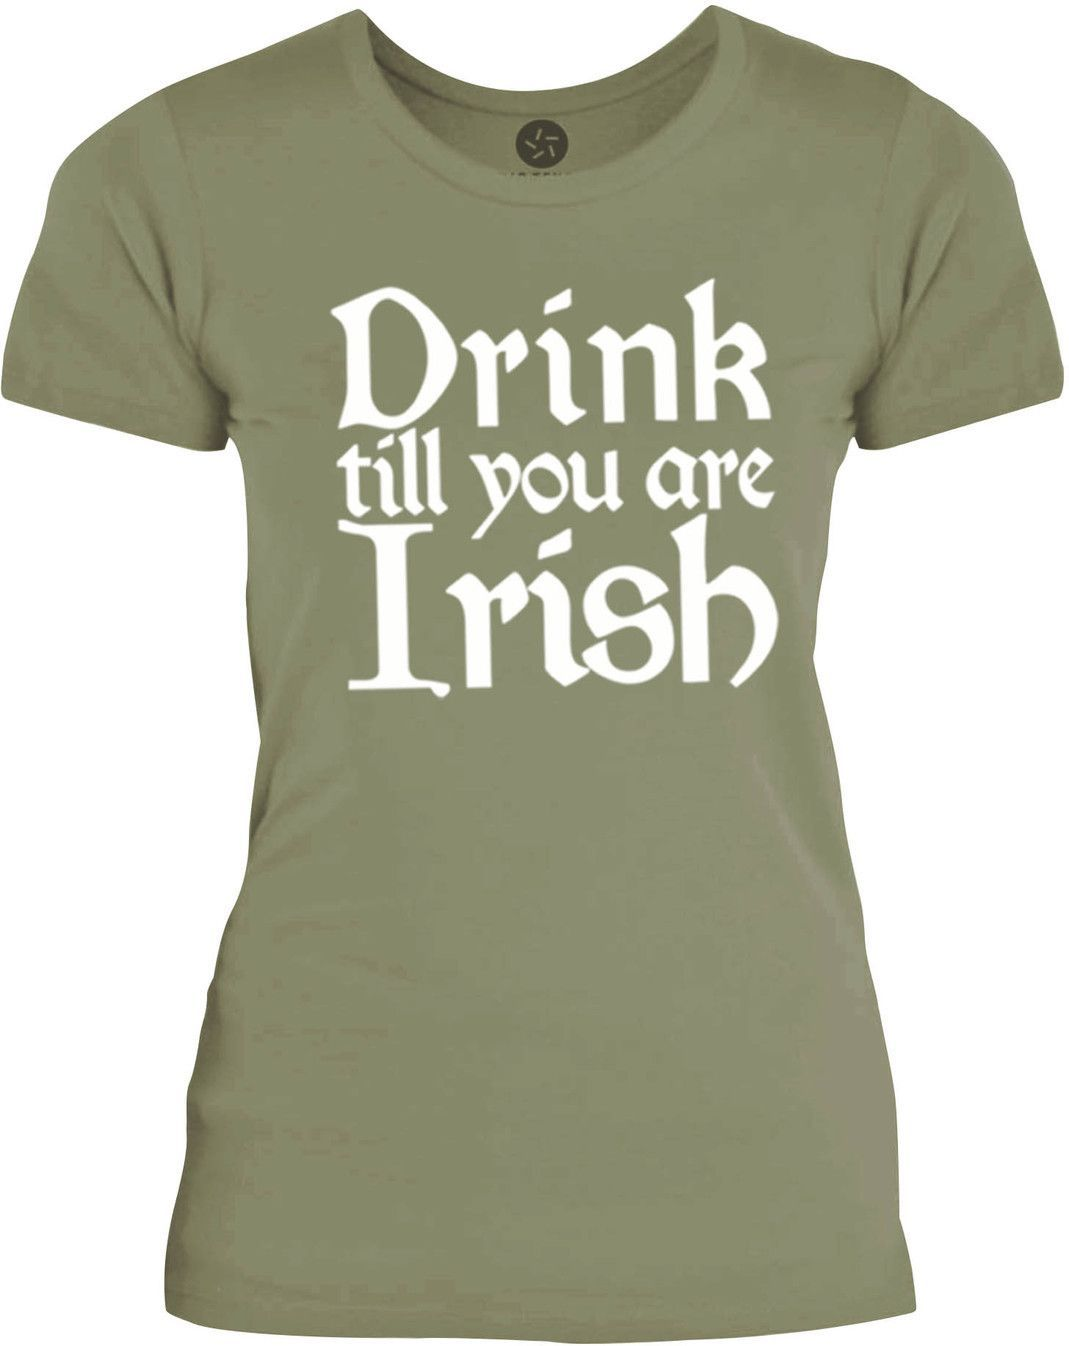 Big Texas Drink till you are Irish (White) Womens Fine Jersey T-Shirt